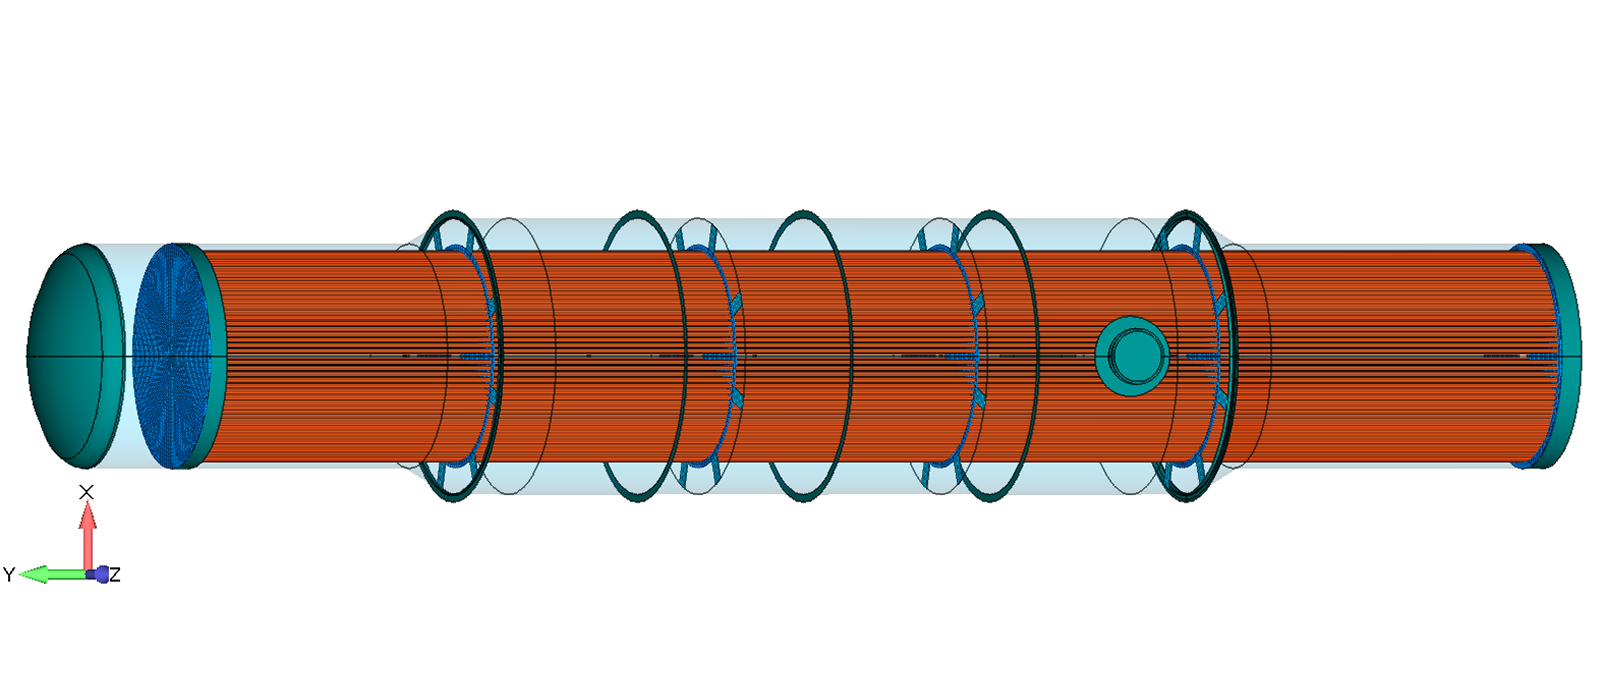 Figure 1:  The tubes of this shell-and-tube heat exchanger were modeled with beam elements.